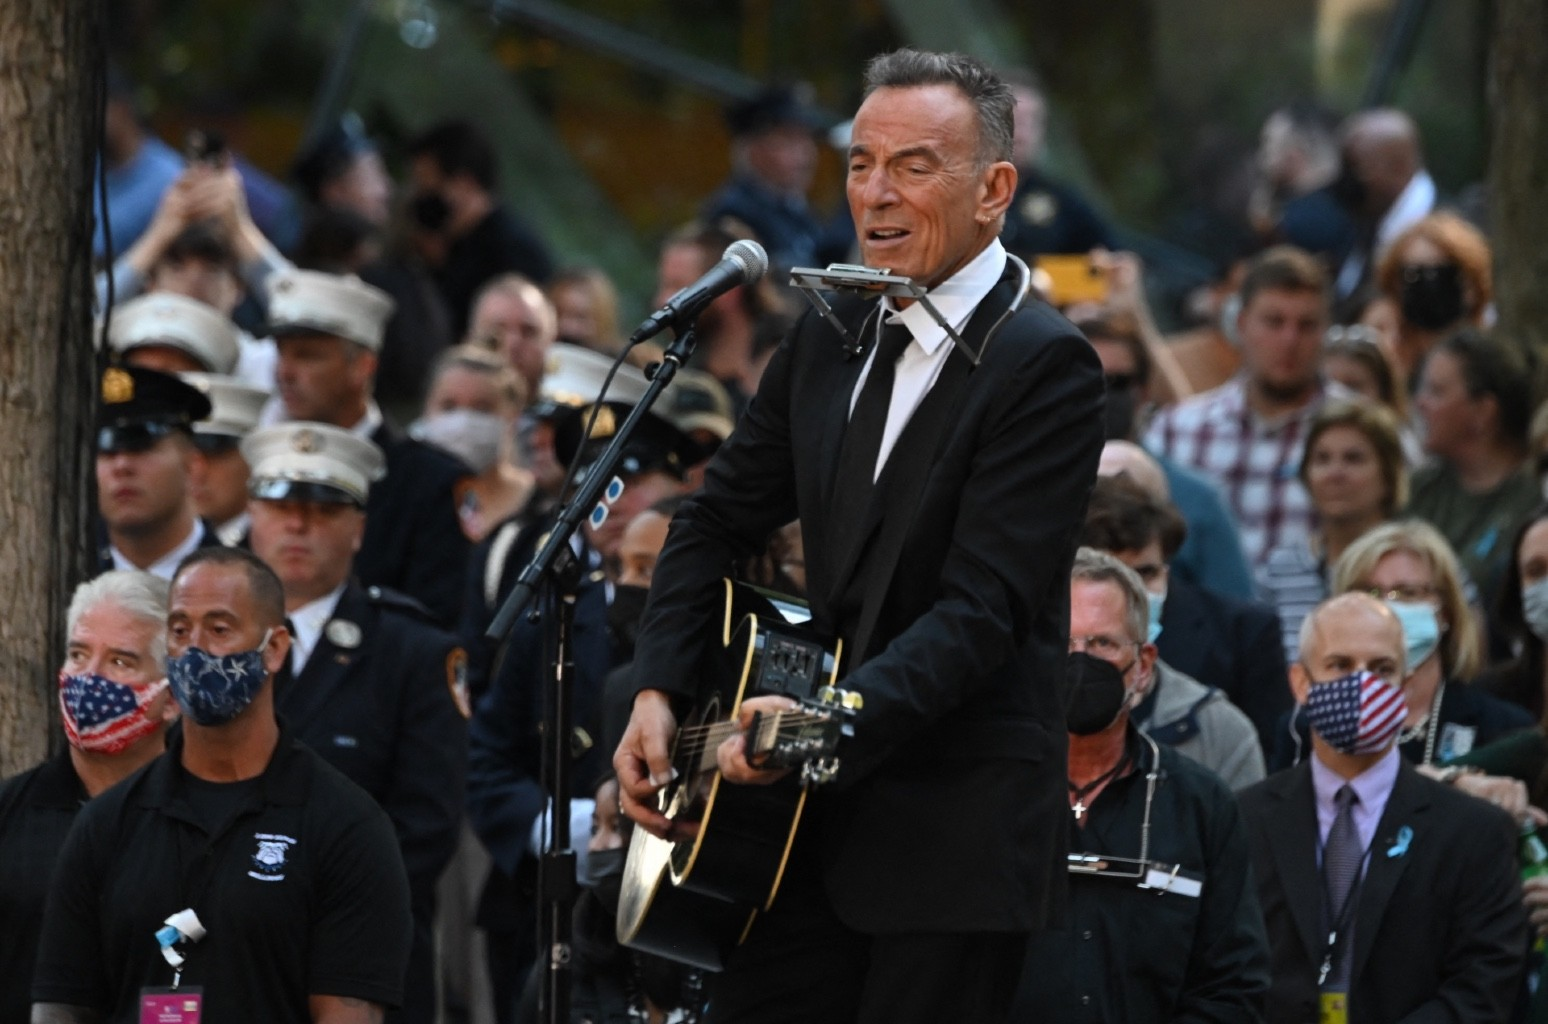 9/11 Memorial 2021: Bruce Springsteen Performs 'I'll See You In My Dreams'